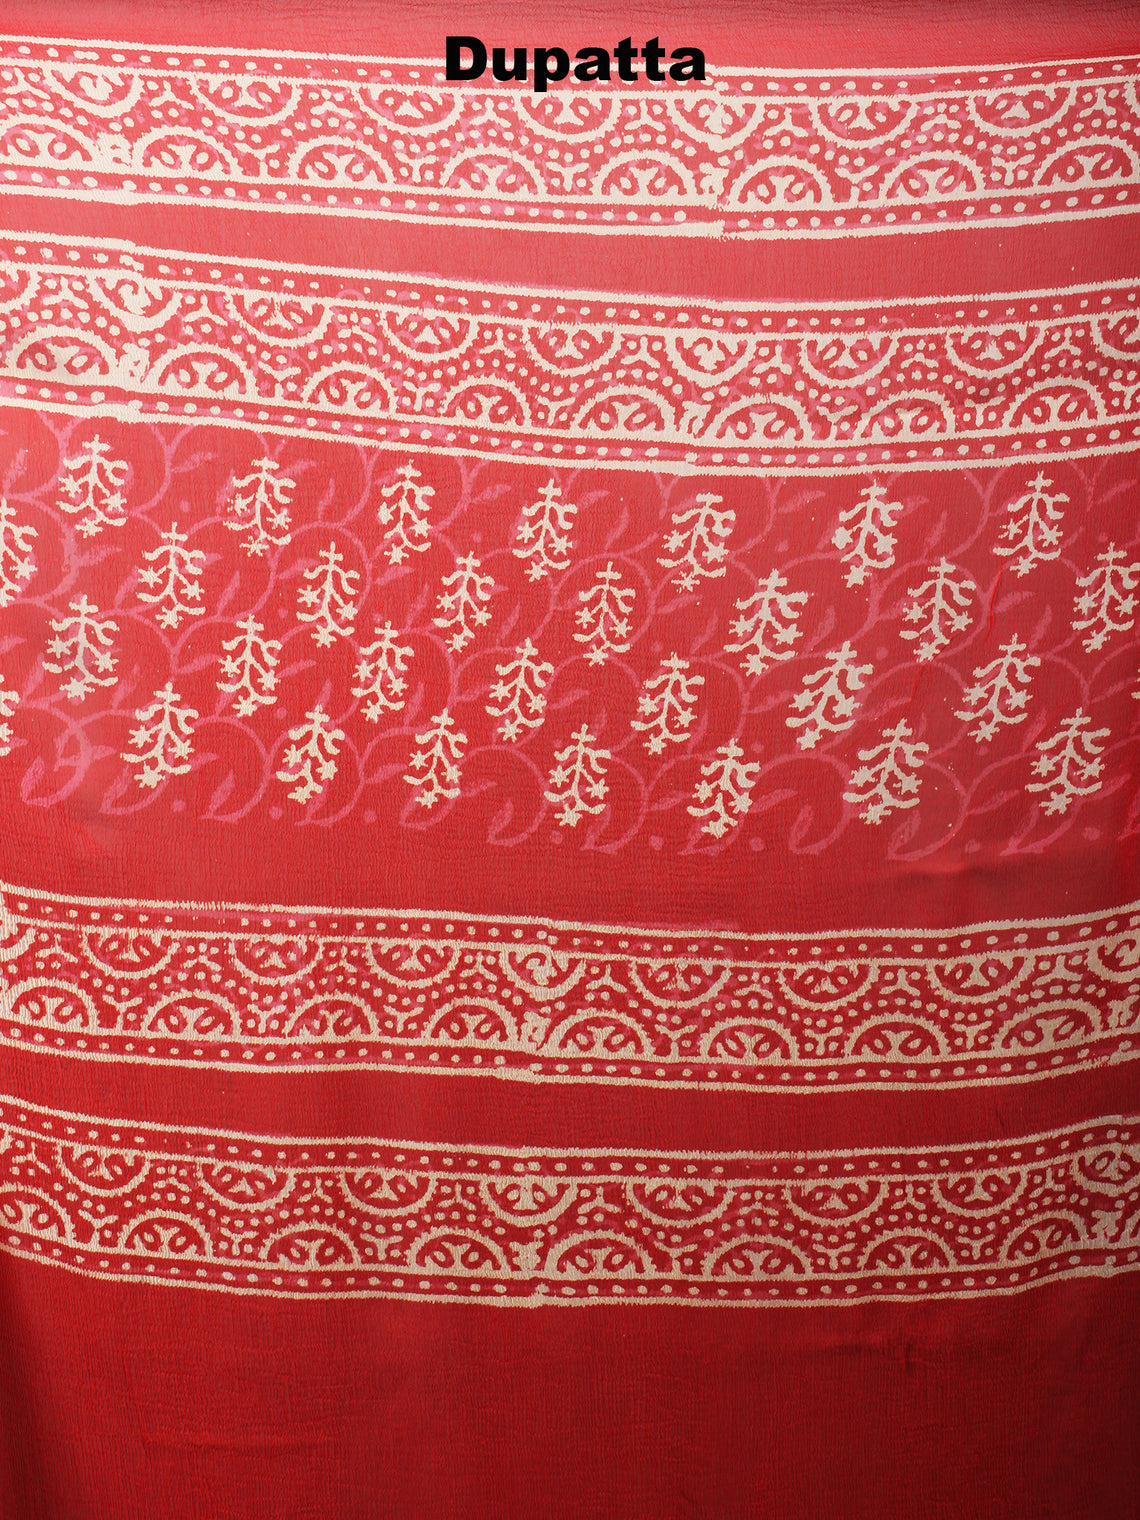 Red White Hand Block Printed Cotton Suit-Salwar Fabric With Chiffon Dupatta - S1628044